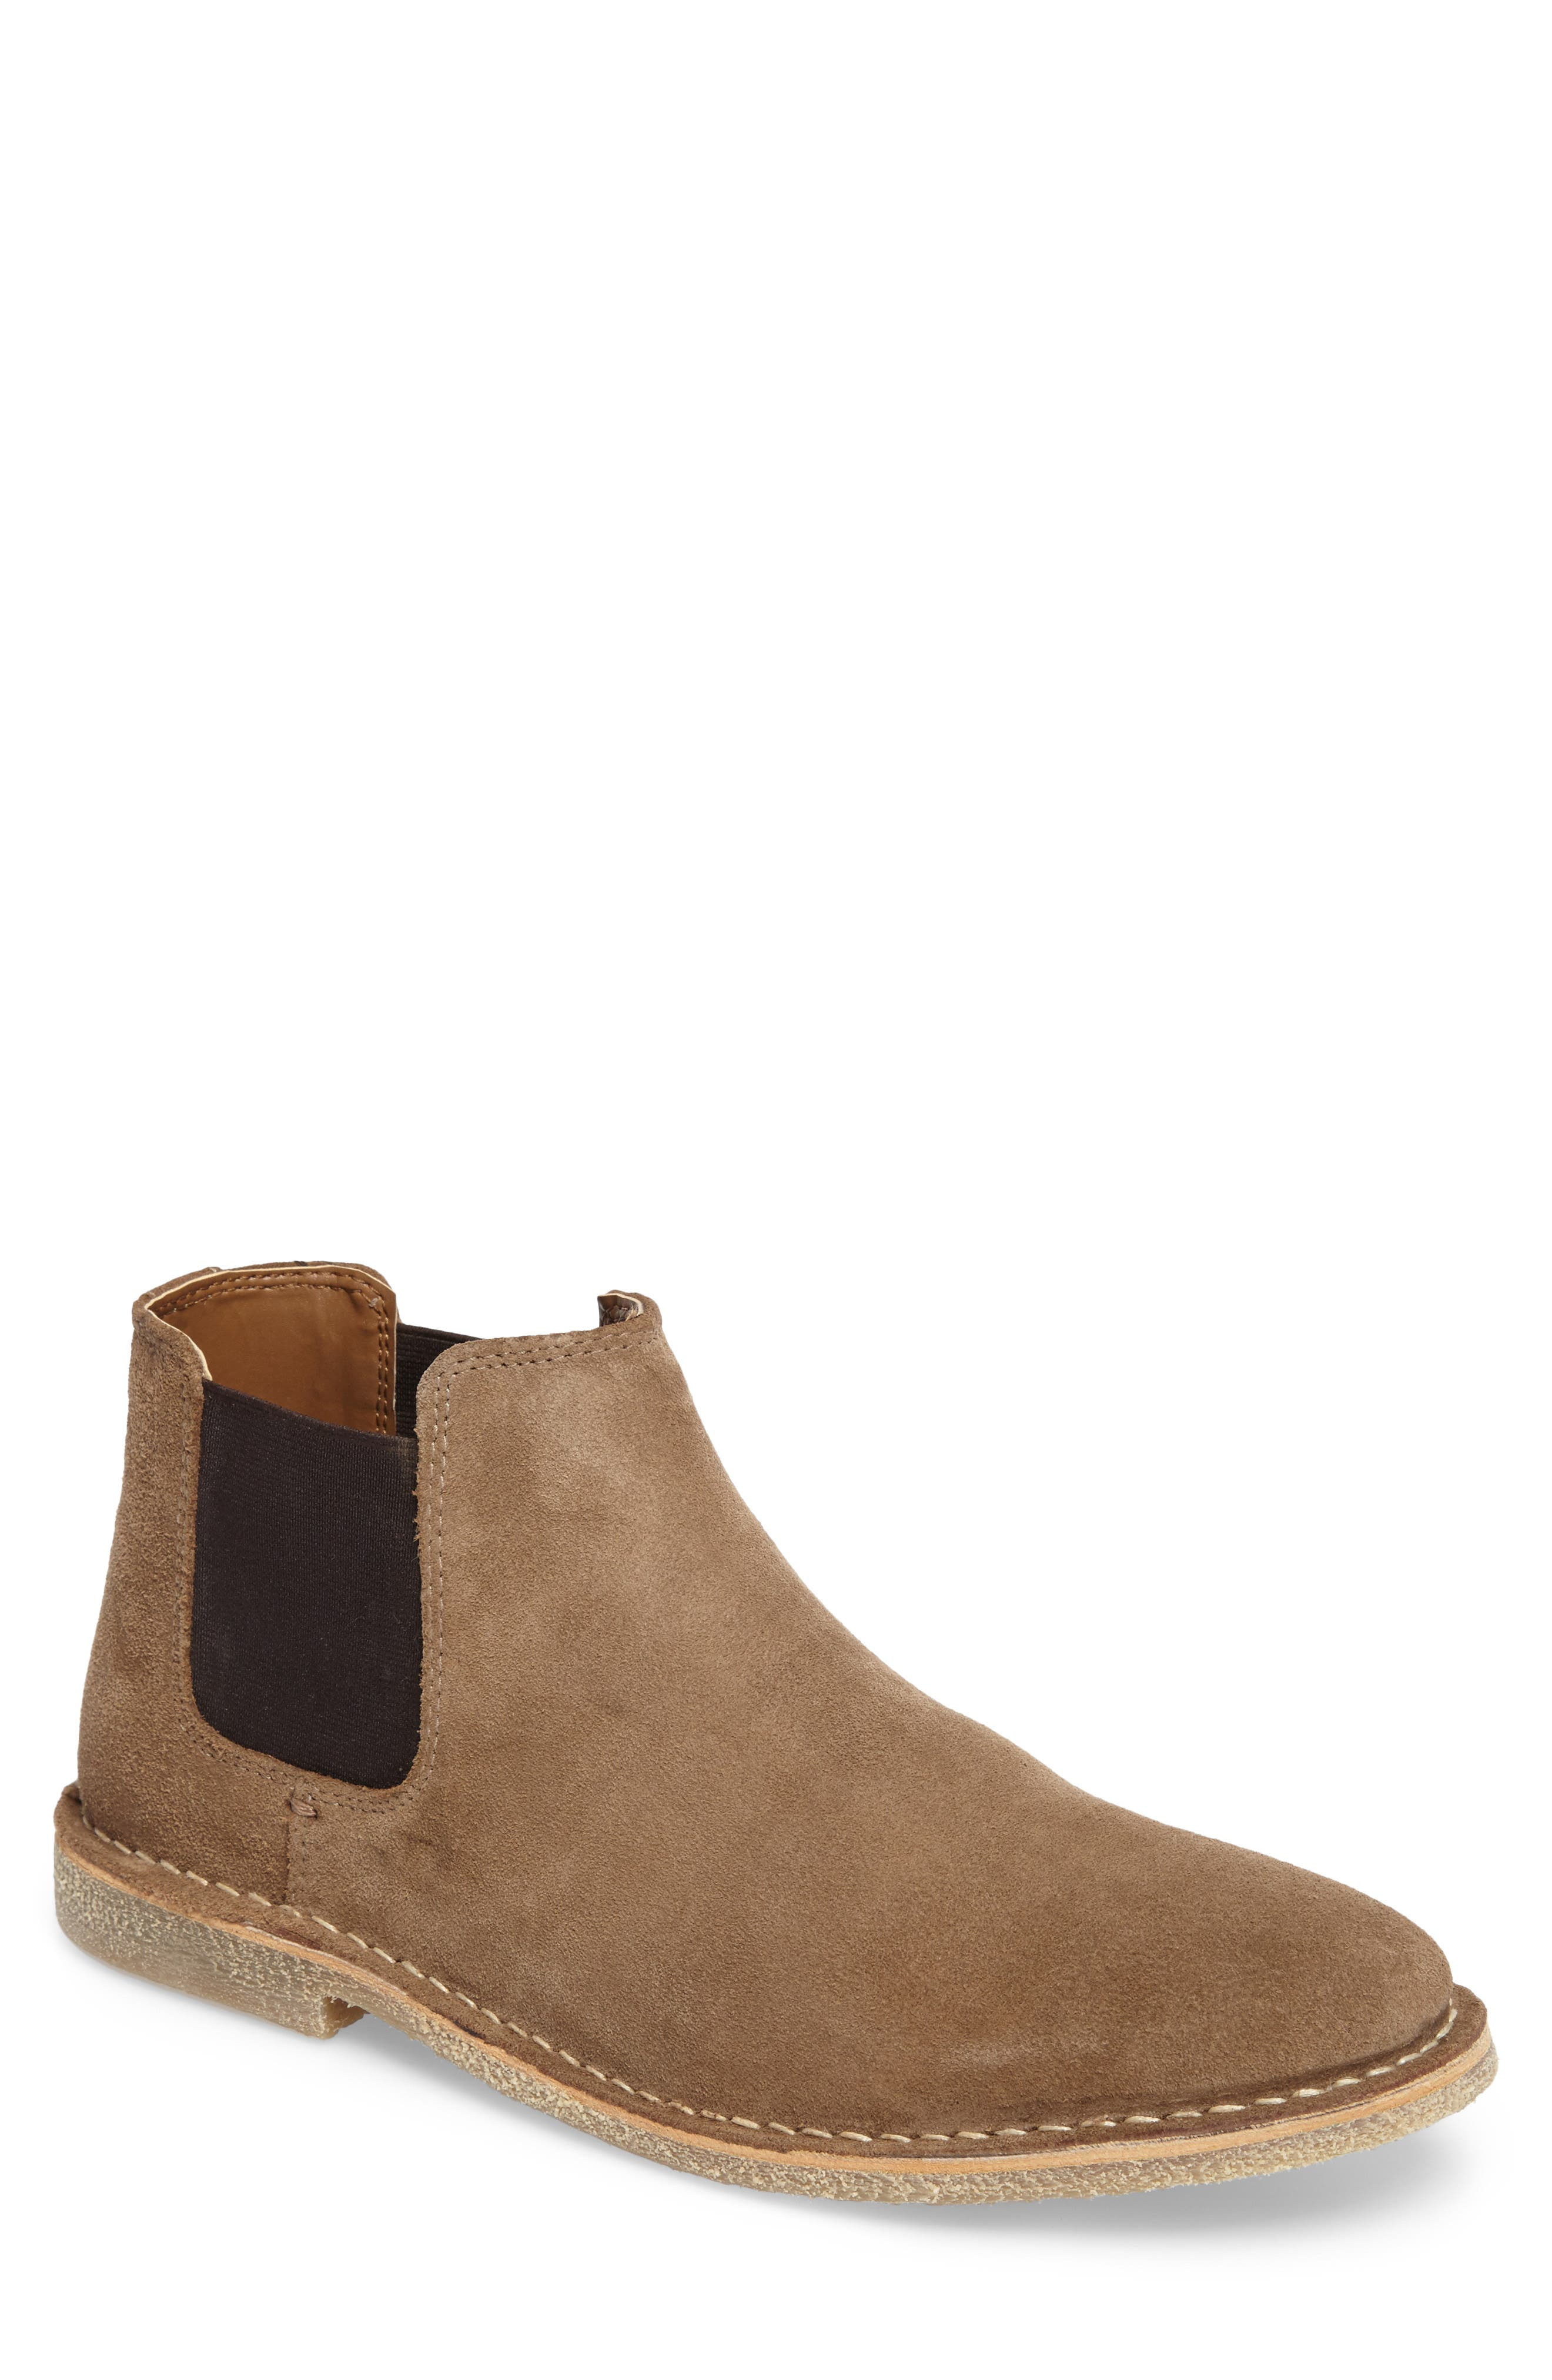 Kenneth Cole Reaction Chelsea Boot,                         Main,                         color, 205